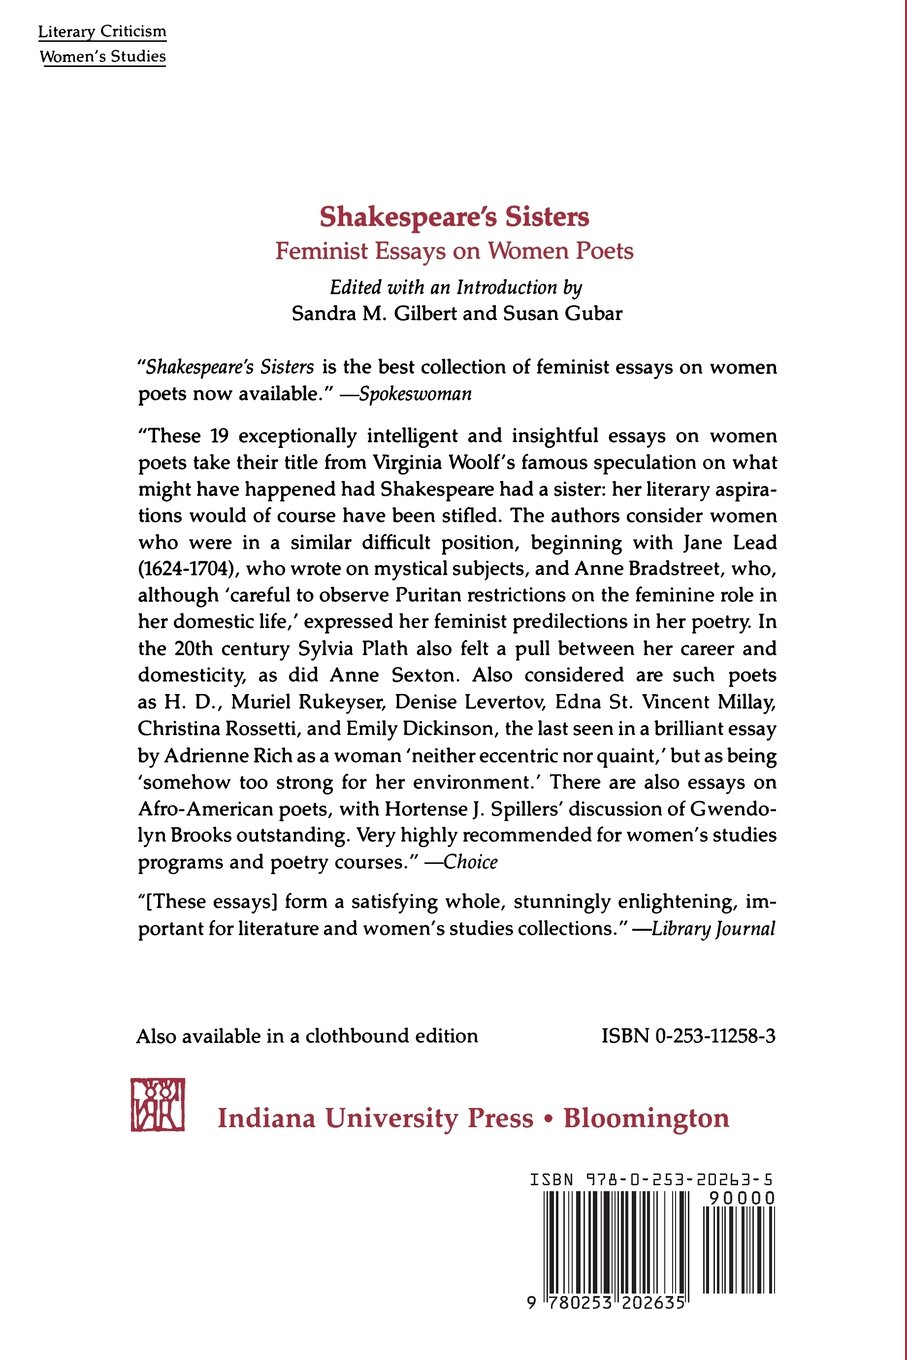 shakespeare s sisters feminist essays on women poets edited by shakespeare s sisters feminist essays on women poets edited by sandra m gilbert and susan gubar 9780253202635 com books